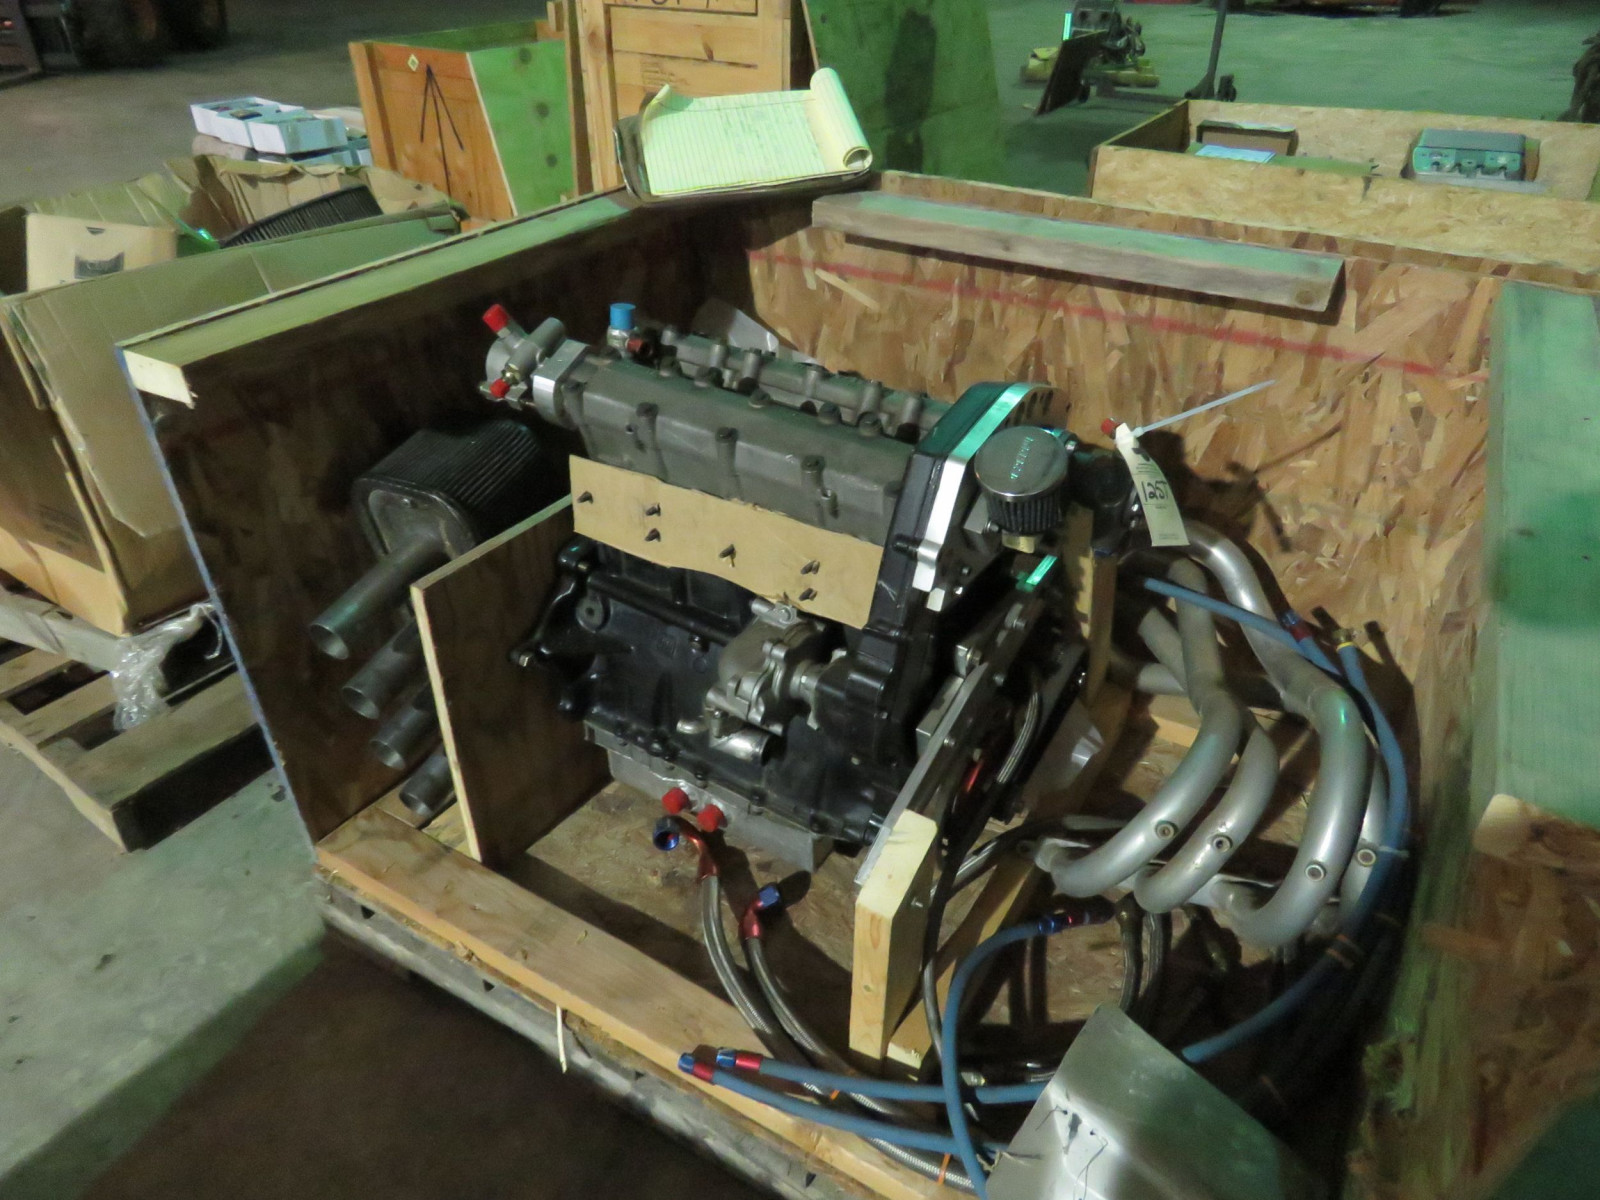 Chevy II Fuel Injected Motor for Vintage Midget Race Car - Image 1